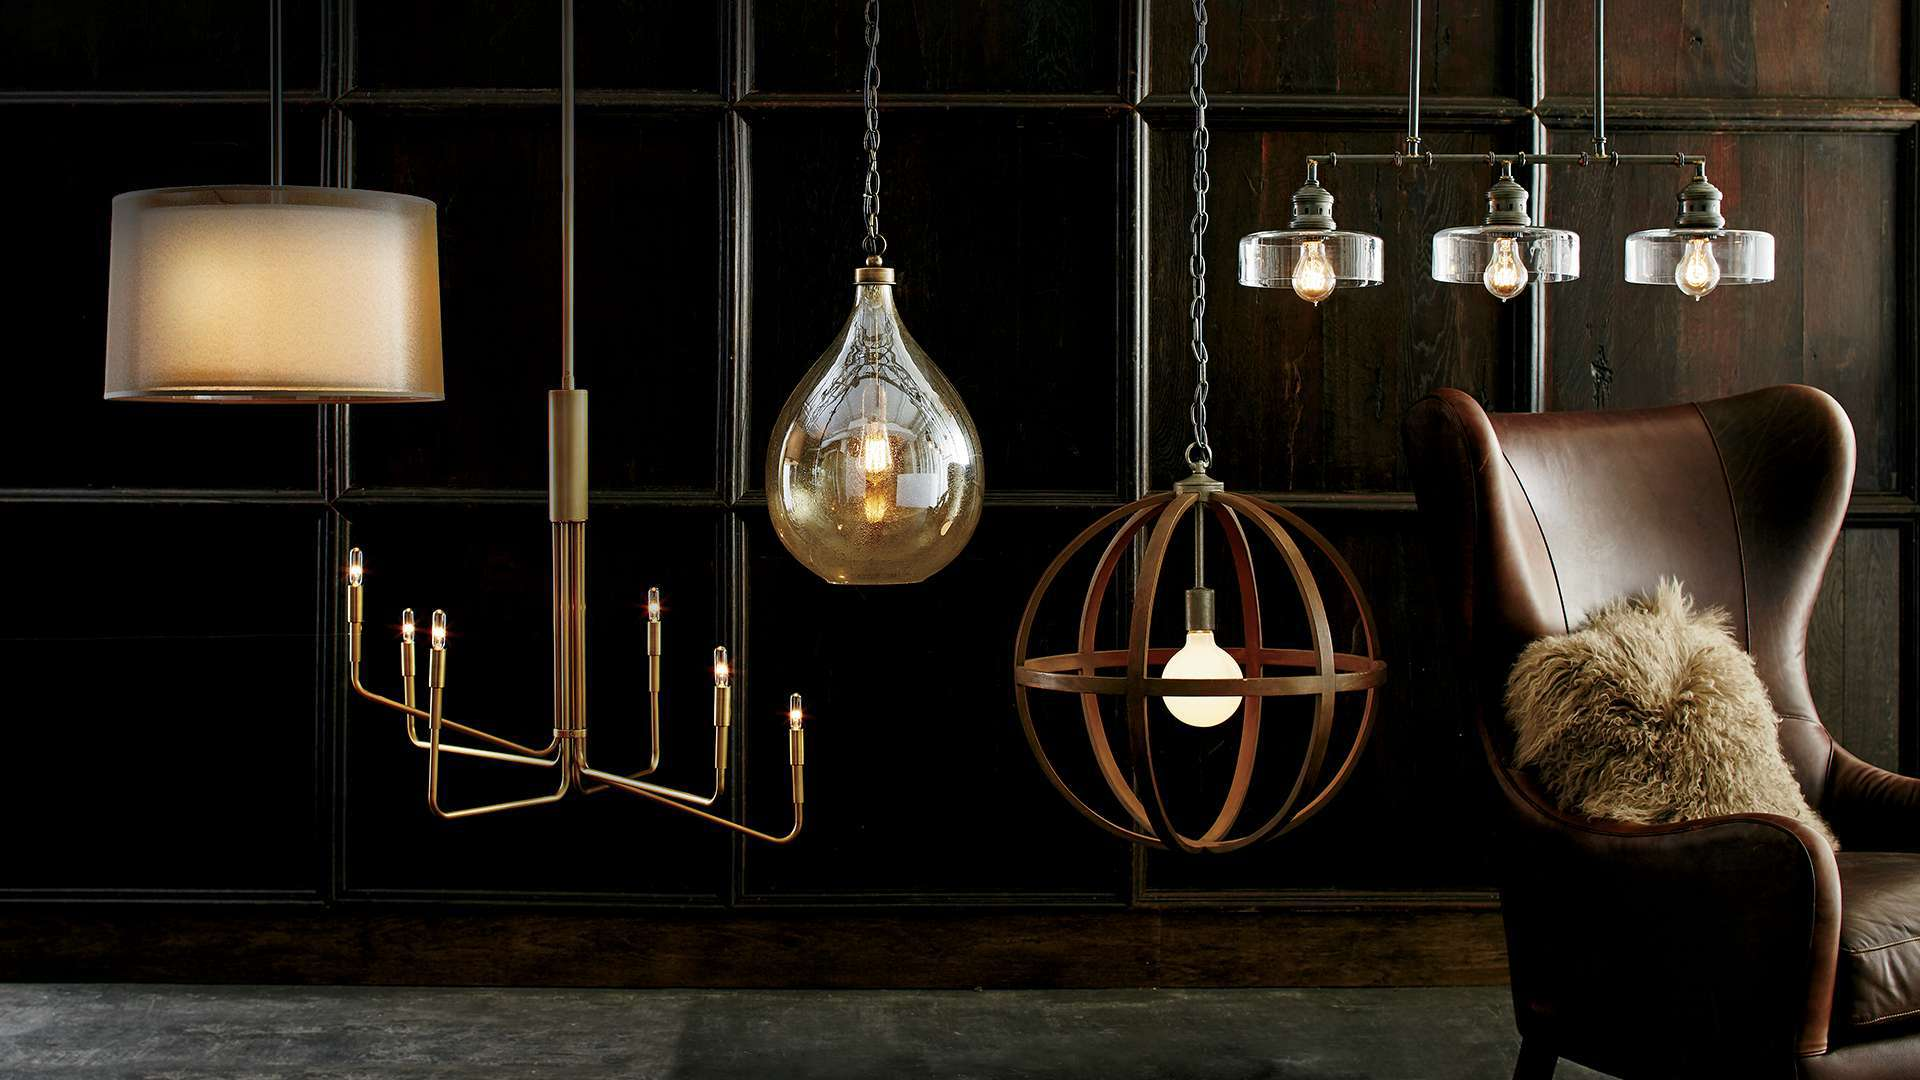 Multiple pendant lights hanging in a room with a leather chair